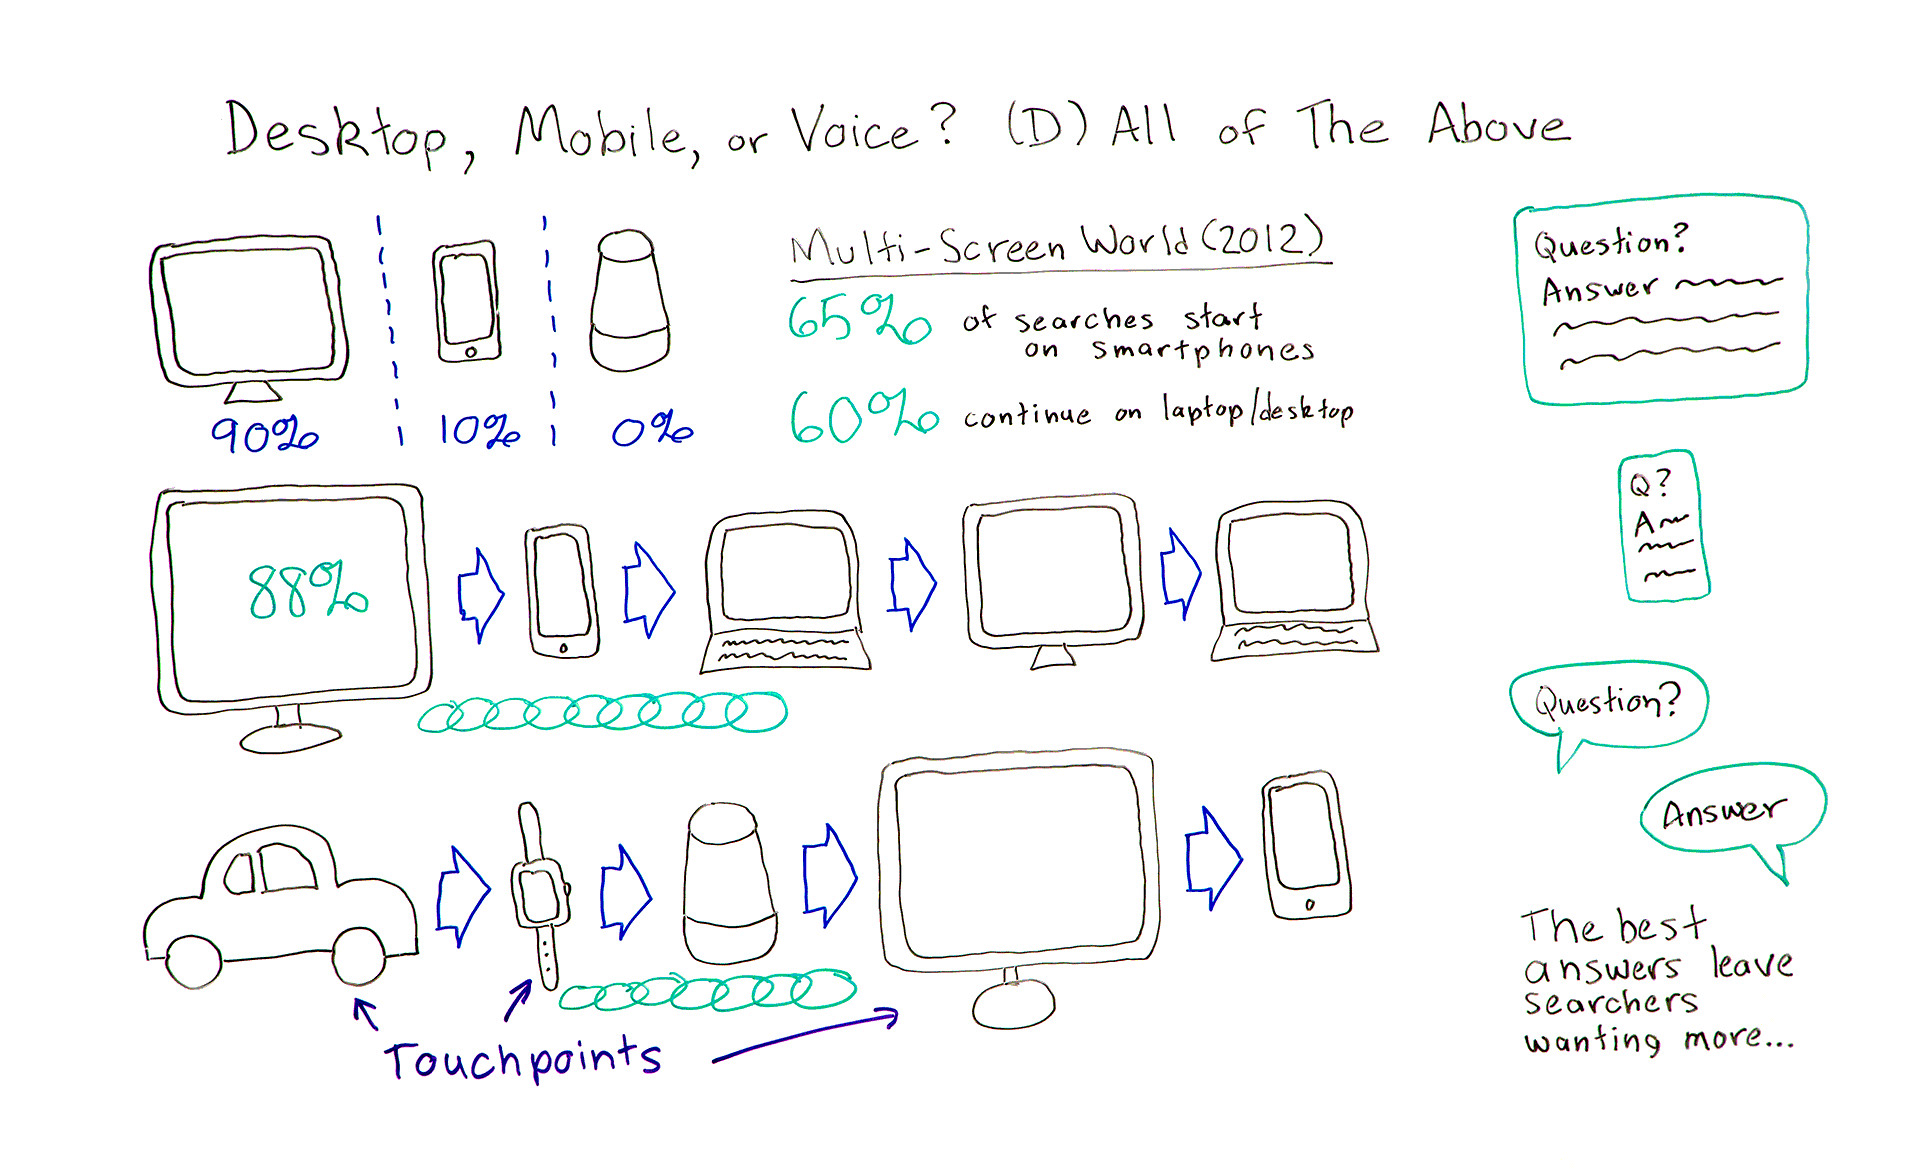 Desktop, Mobile or Voice? All of the above.